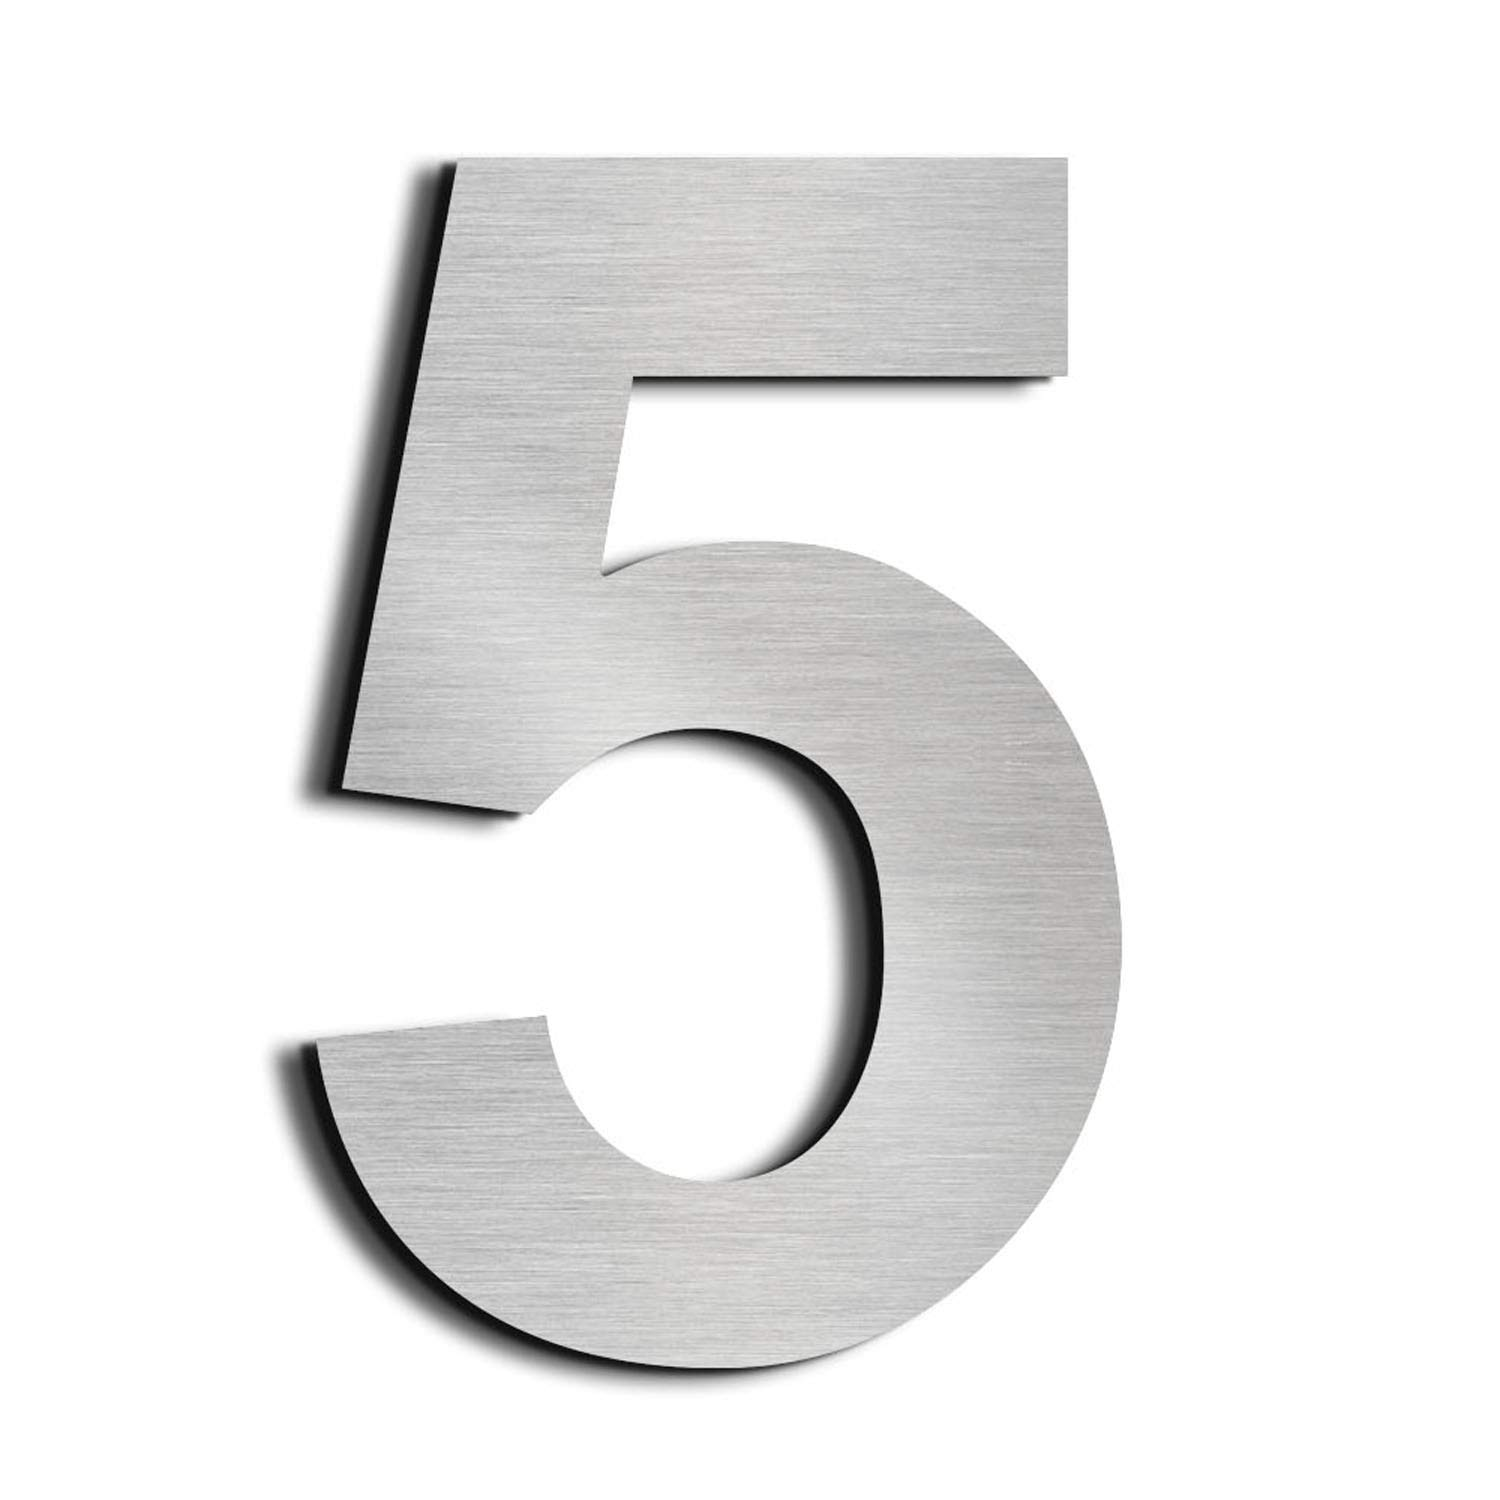 nanly House Number 1 One Made of Solid 304 Stainless Steel Floating Appearance 15.3cm 6in Easy to Install